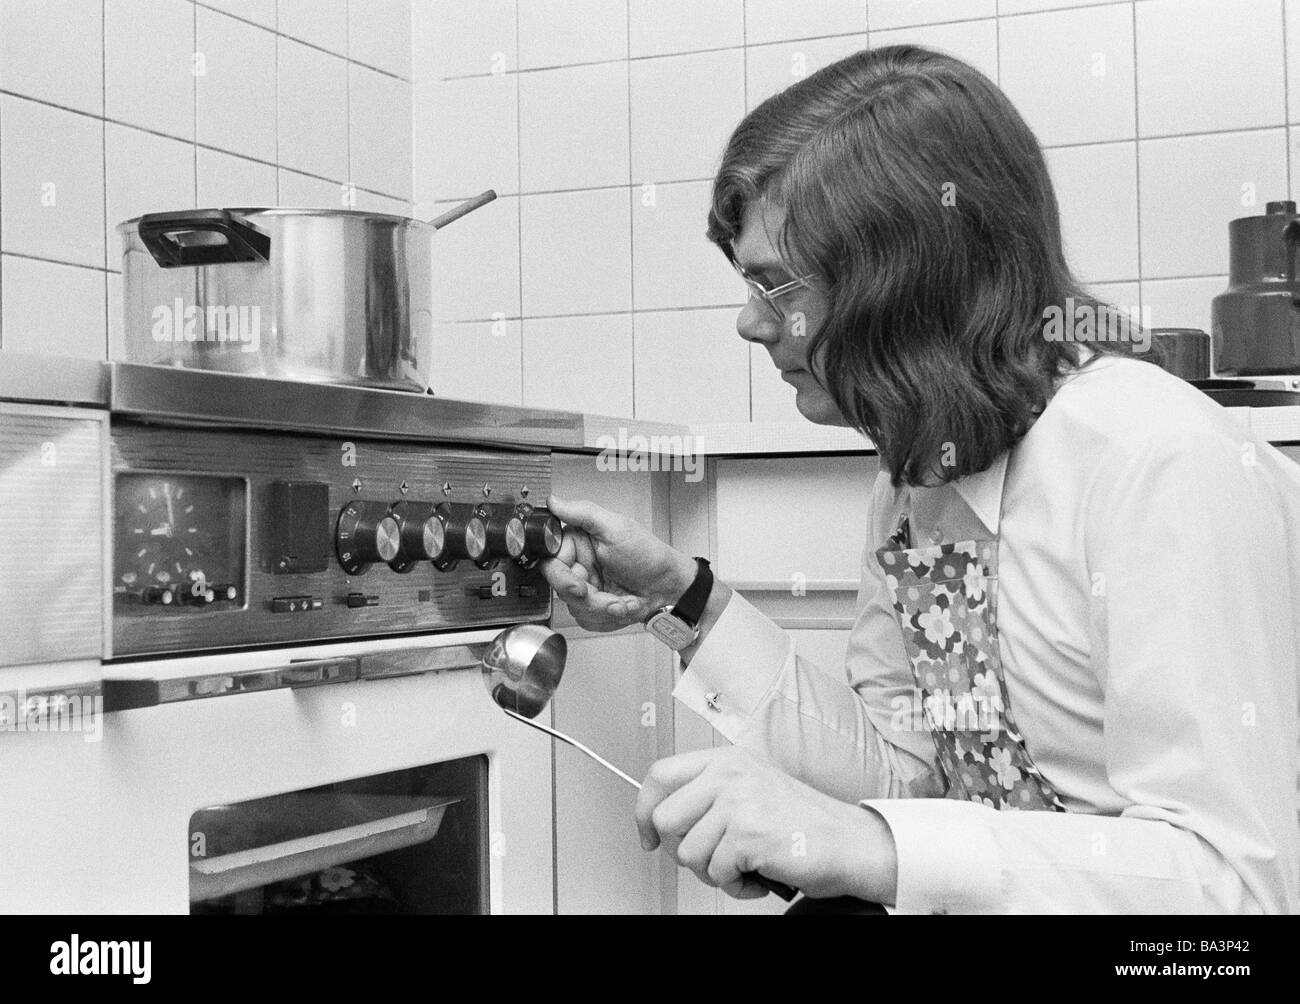 Seventies, black and white photo, people, amateur cook, young man crouches with a ladle in front of the cooking - Stock Image